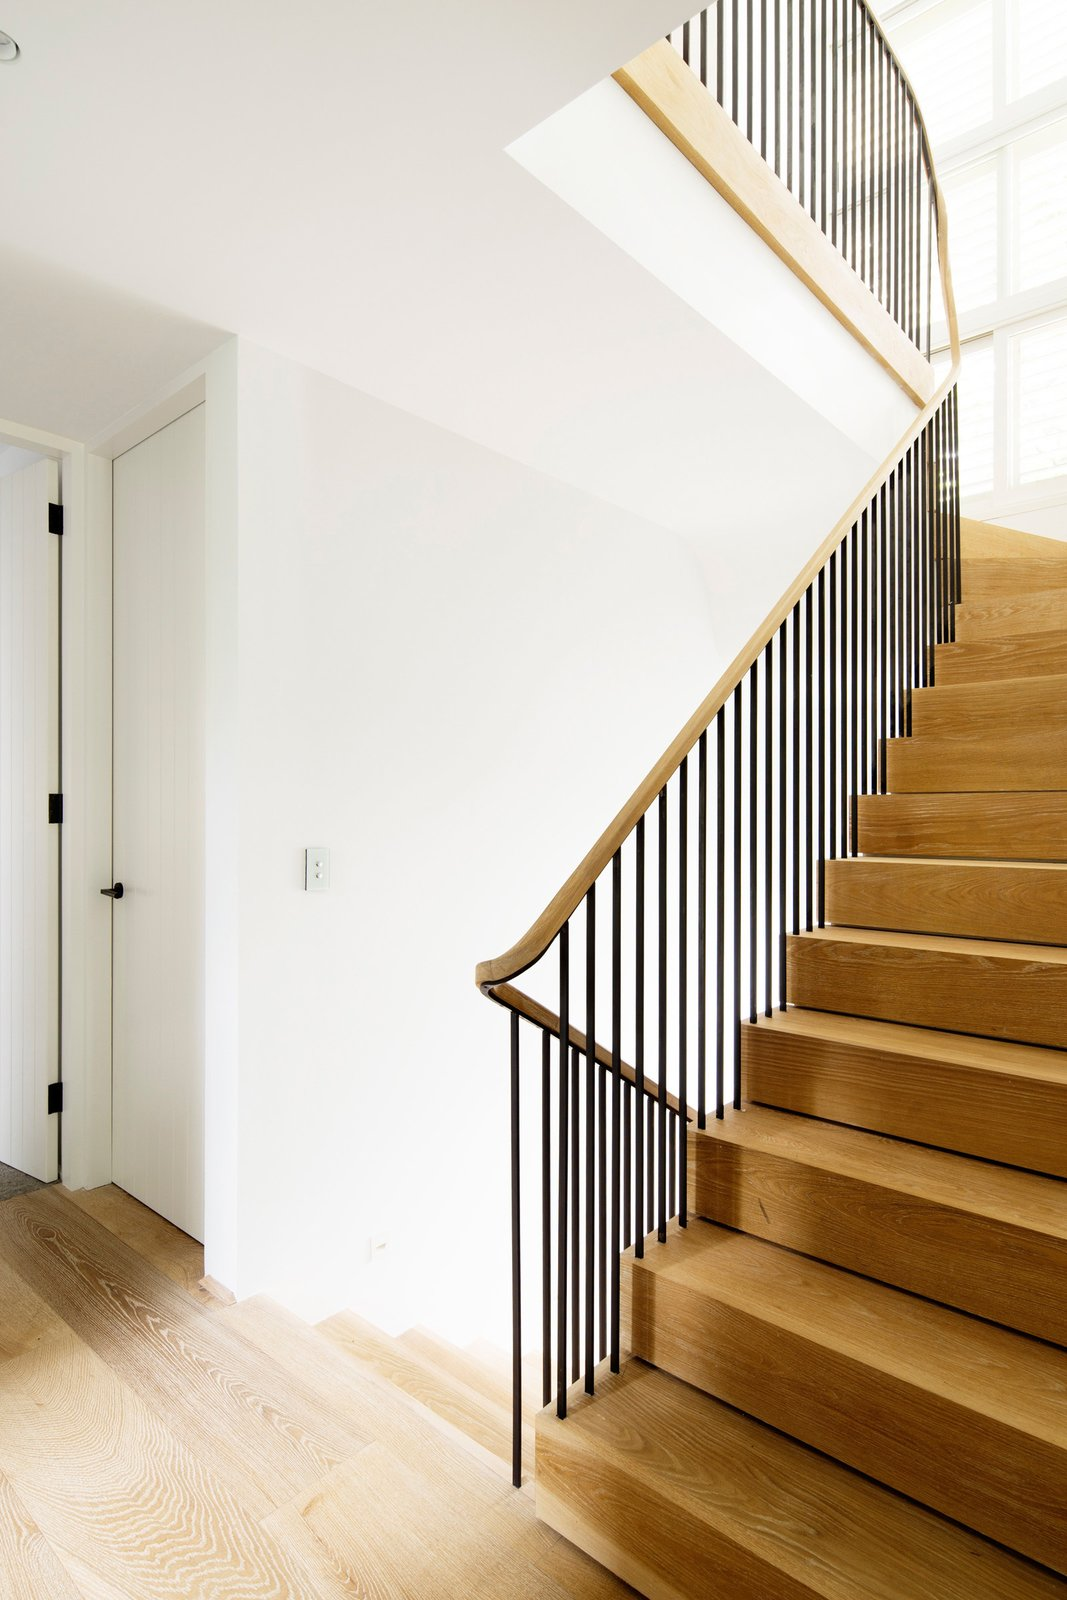 The oak stair is bathed in light from a shuttered vertical window and connects the three storeys of the residence. © Justin Alexander